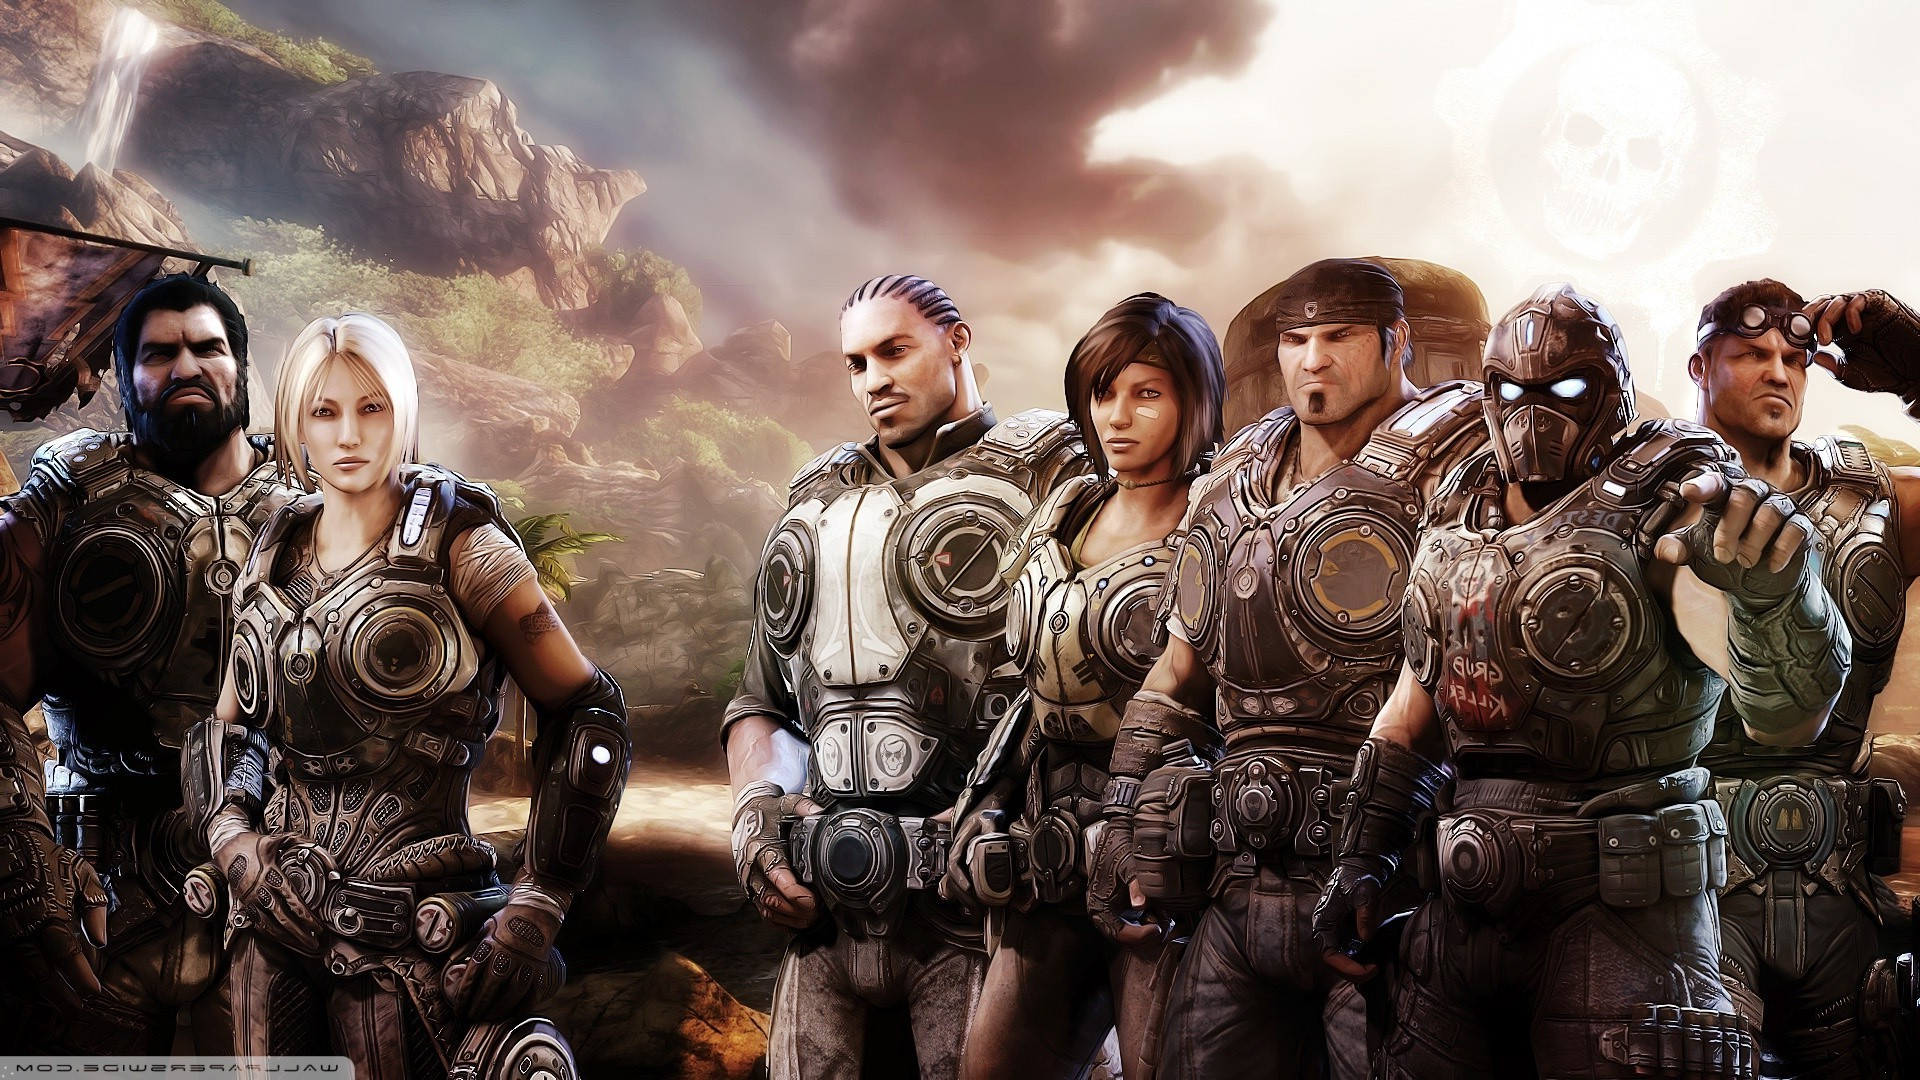 Gears Of War 3 Hd Wallpapers For Android: Gears Of War 3 Wallpaper HD (84+ Images